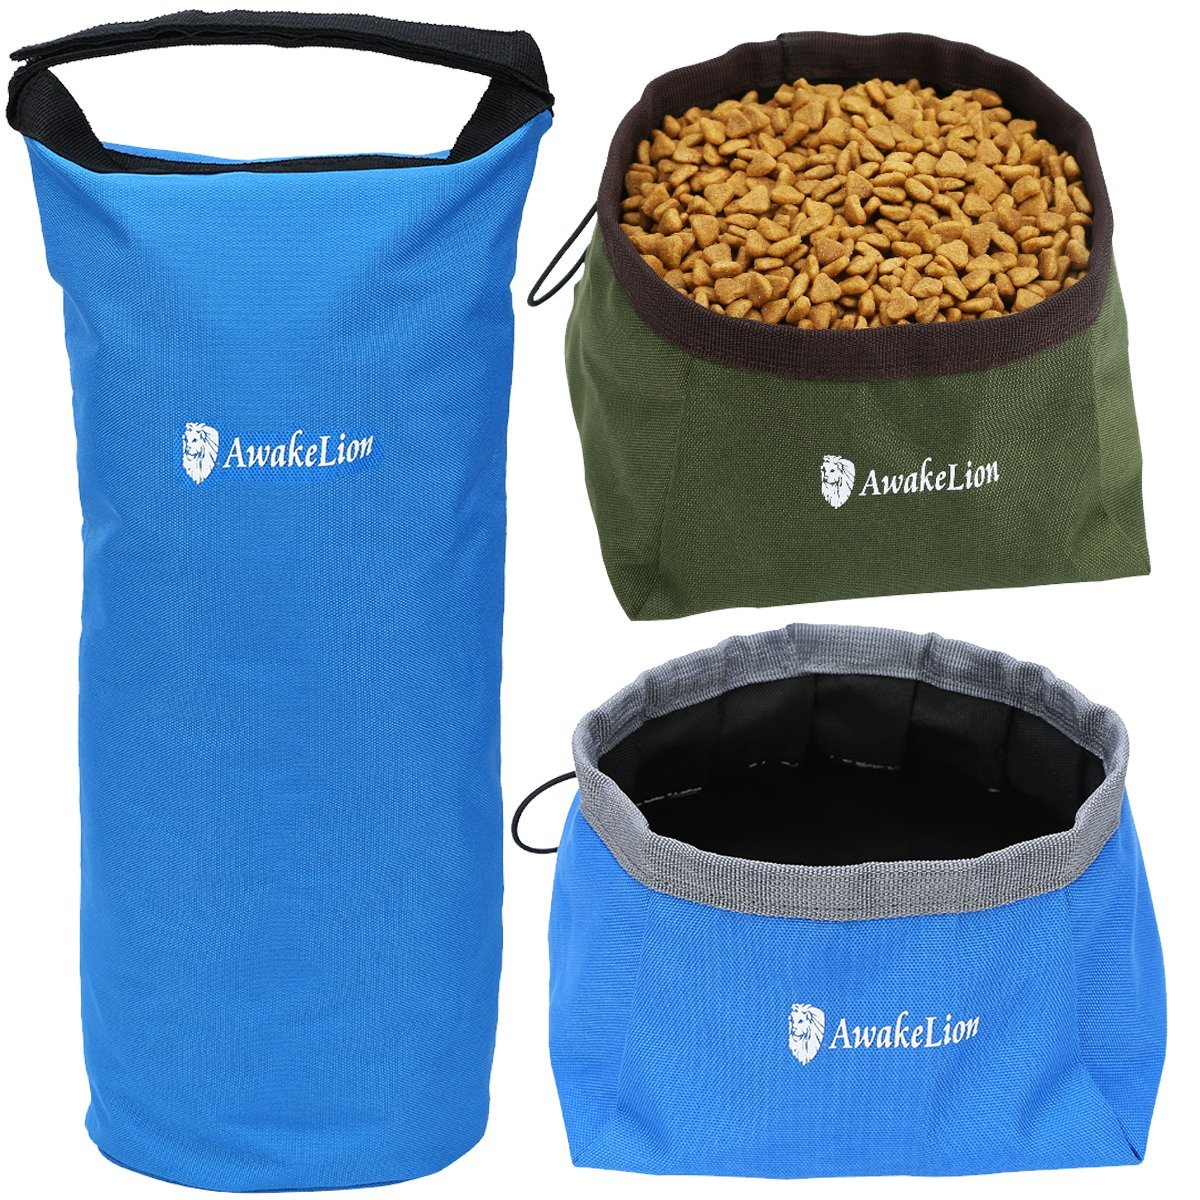 Awakelion Collapsible Dog Bowl Kit, Portable Travel Dog Food Carrier +2 Pack Dog Bowl For Food And Water -Perfect for Medium & Large Dog